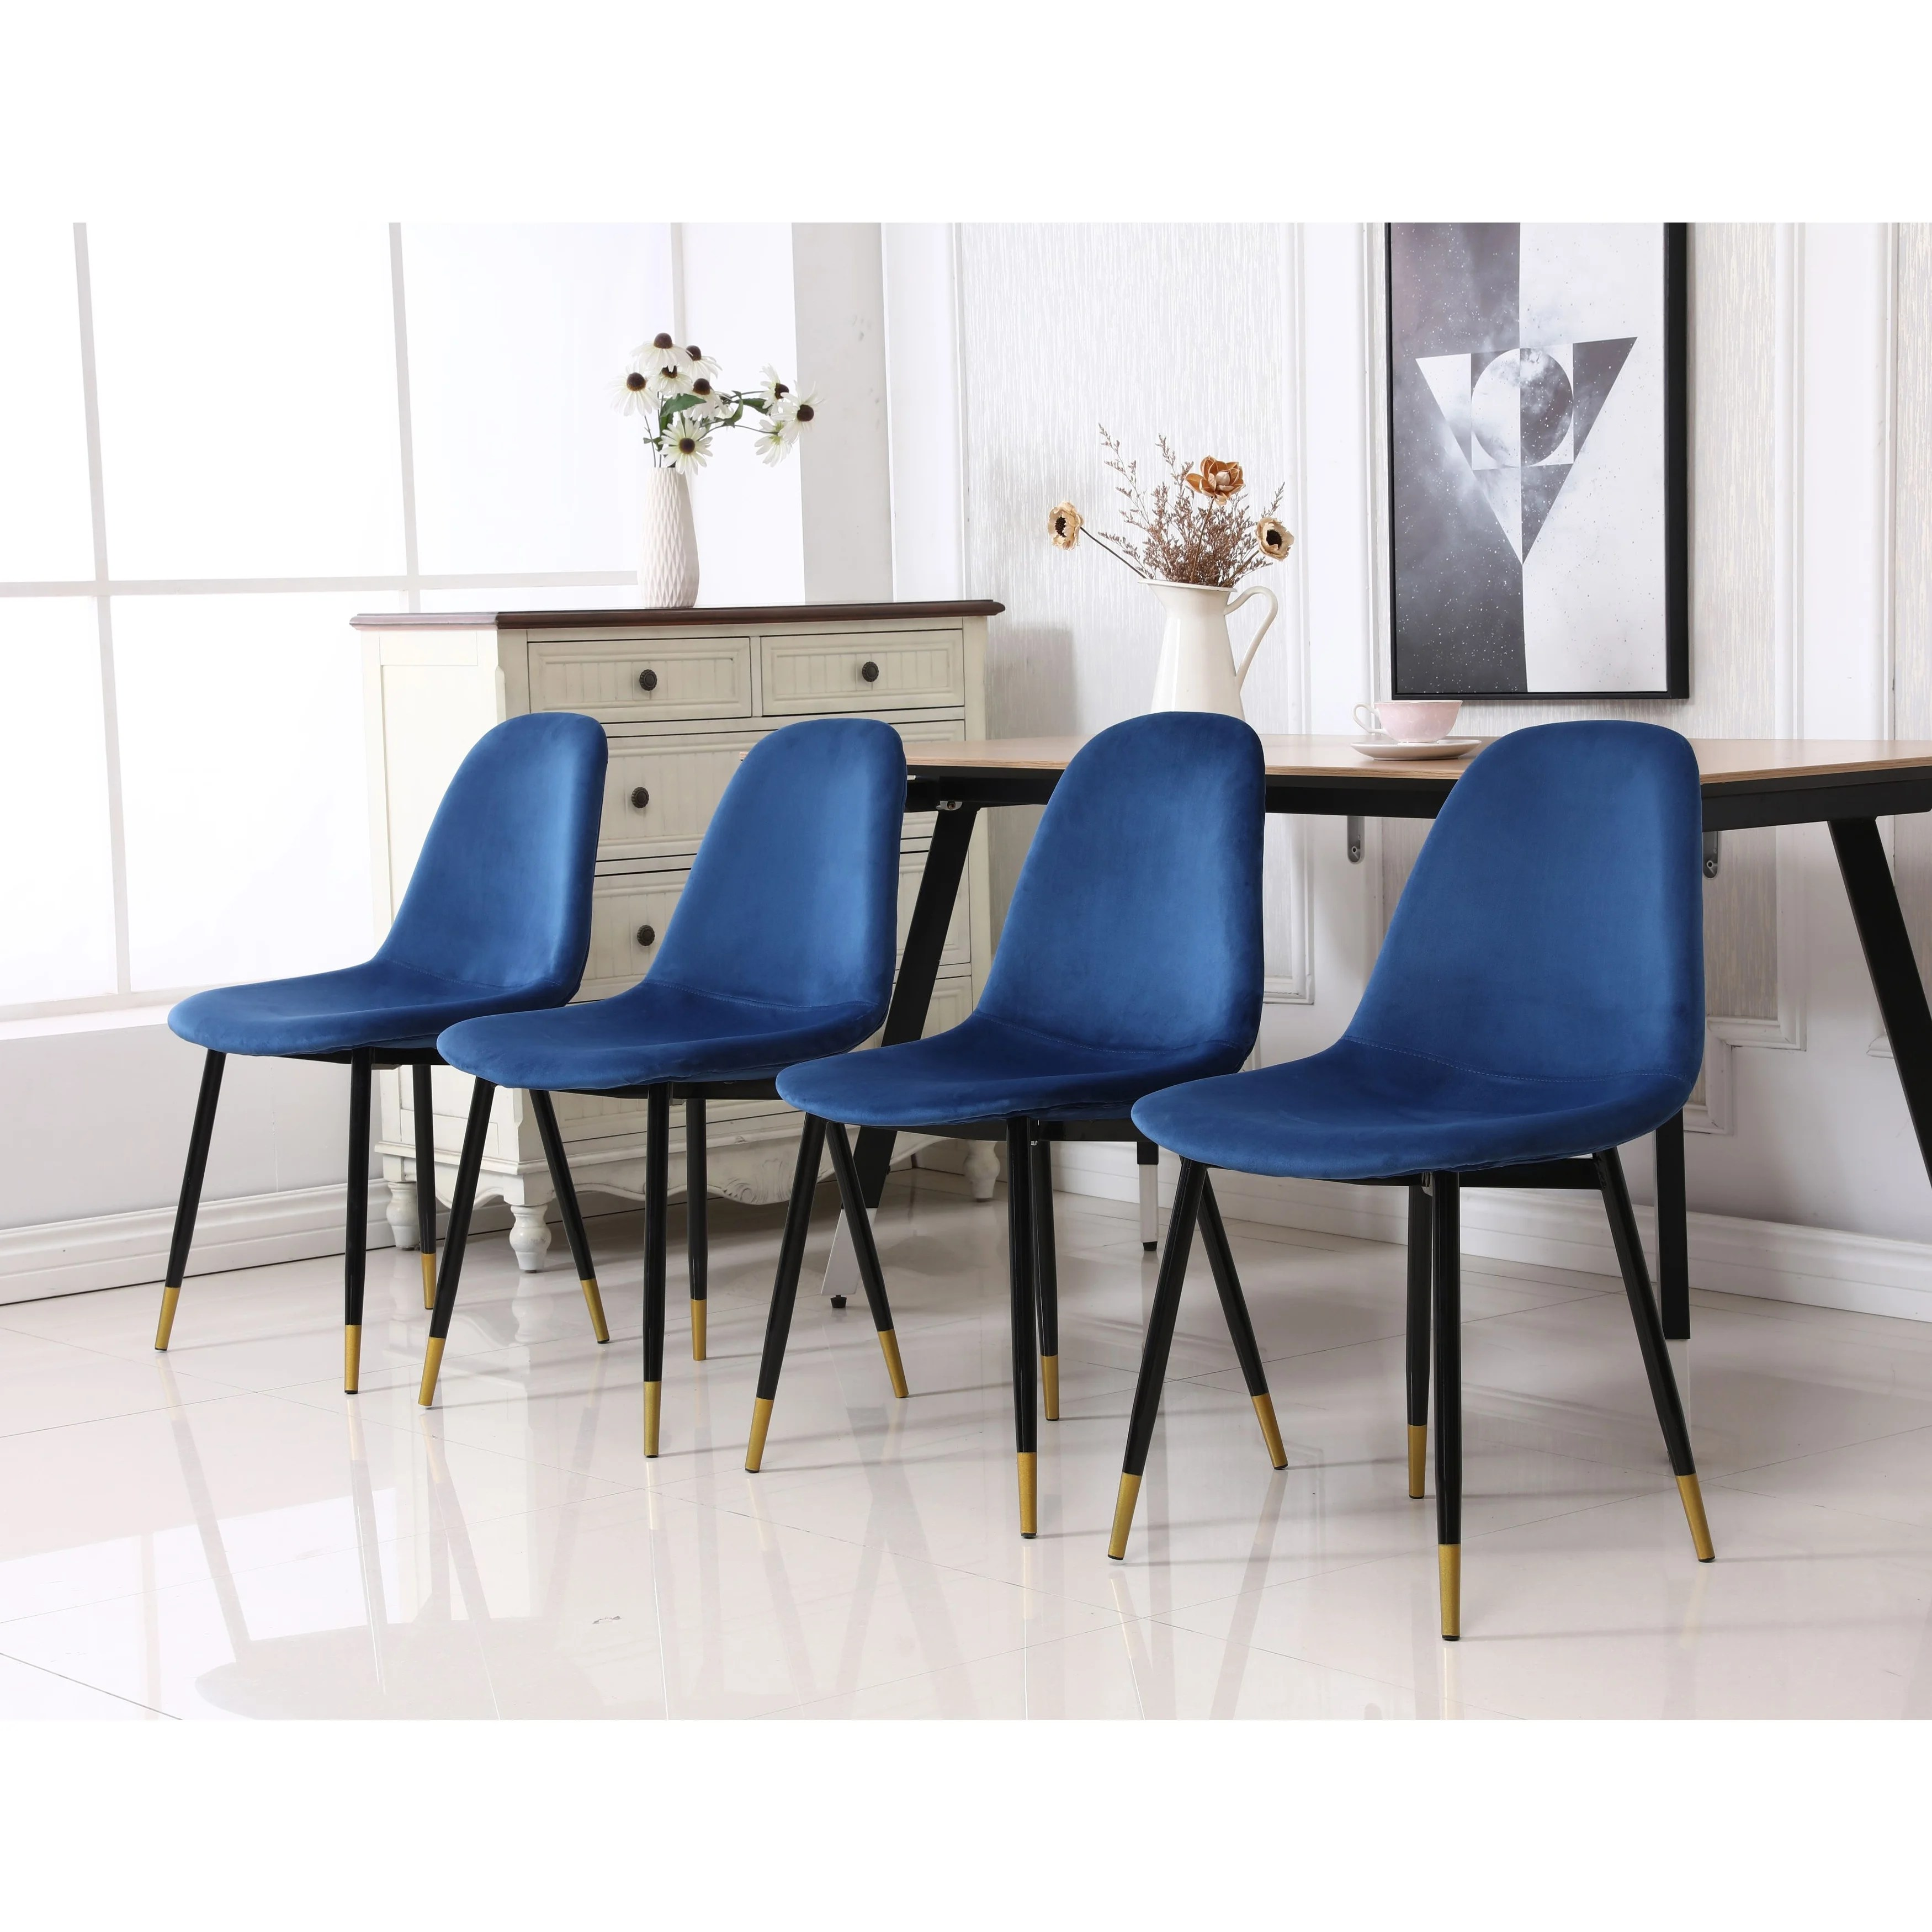 Lassan Contemporary Fabric Upholstered Dining Chairs Set Of 4 On Sale Overstock 31440720